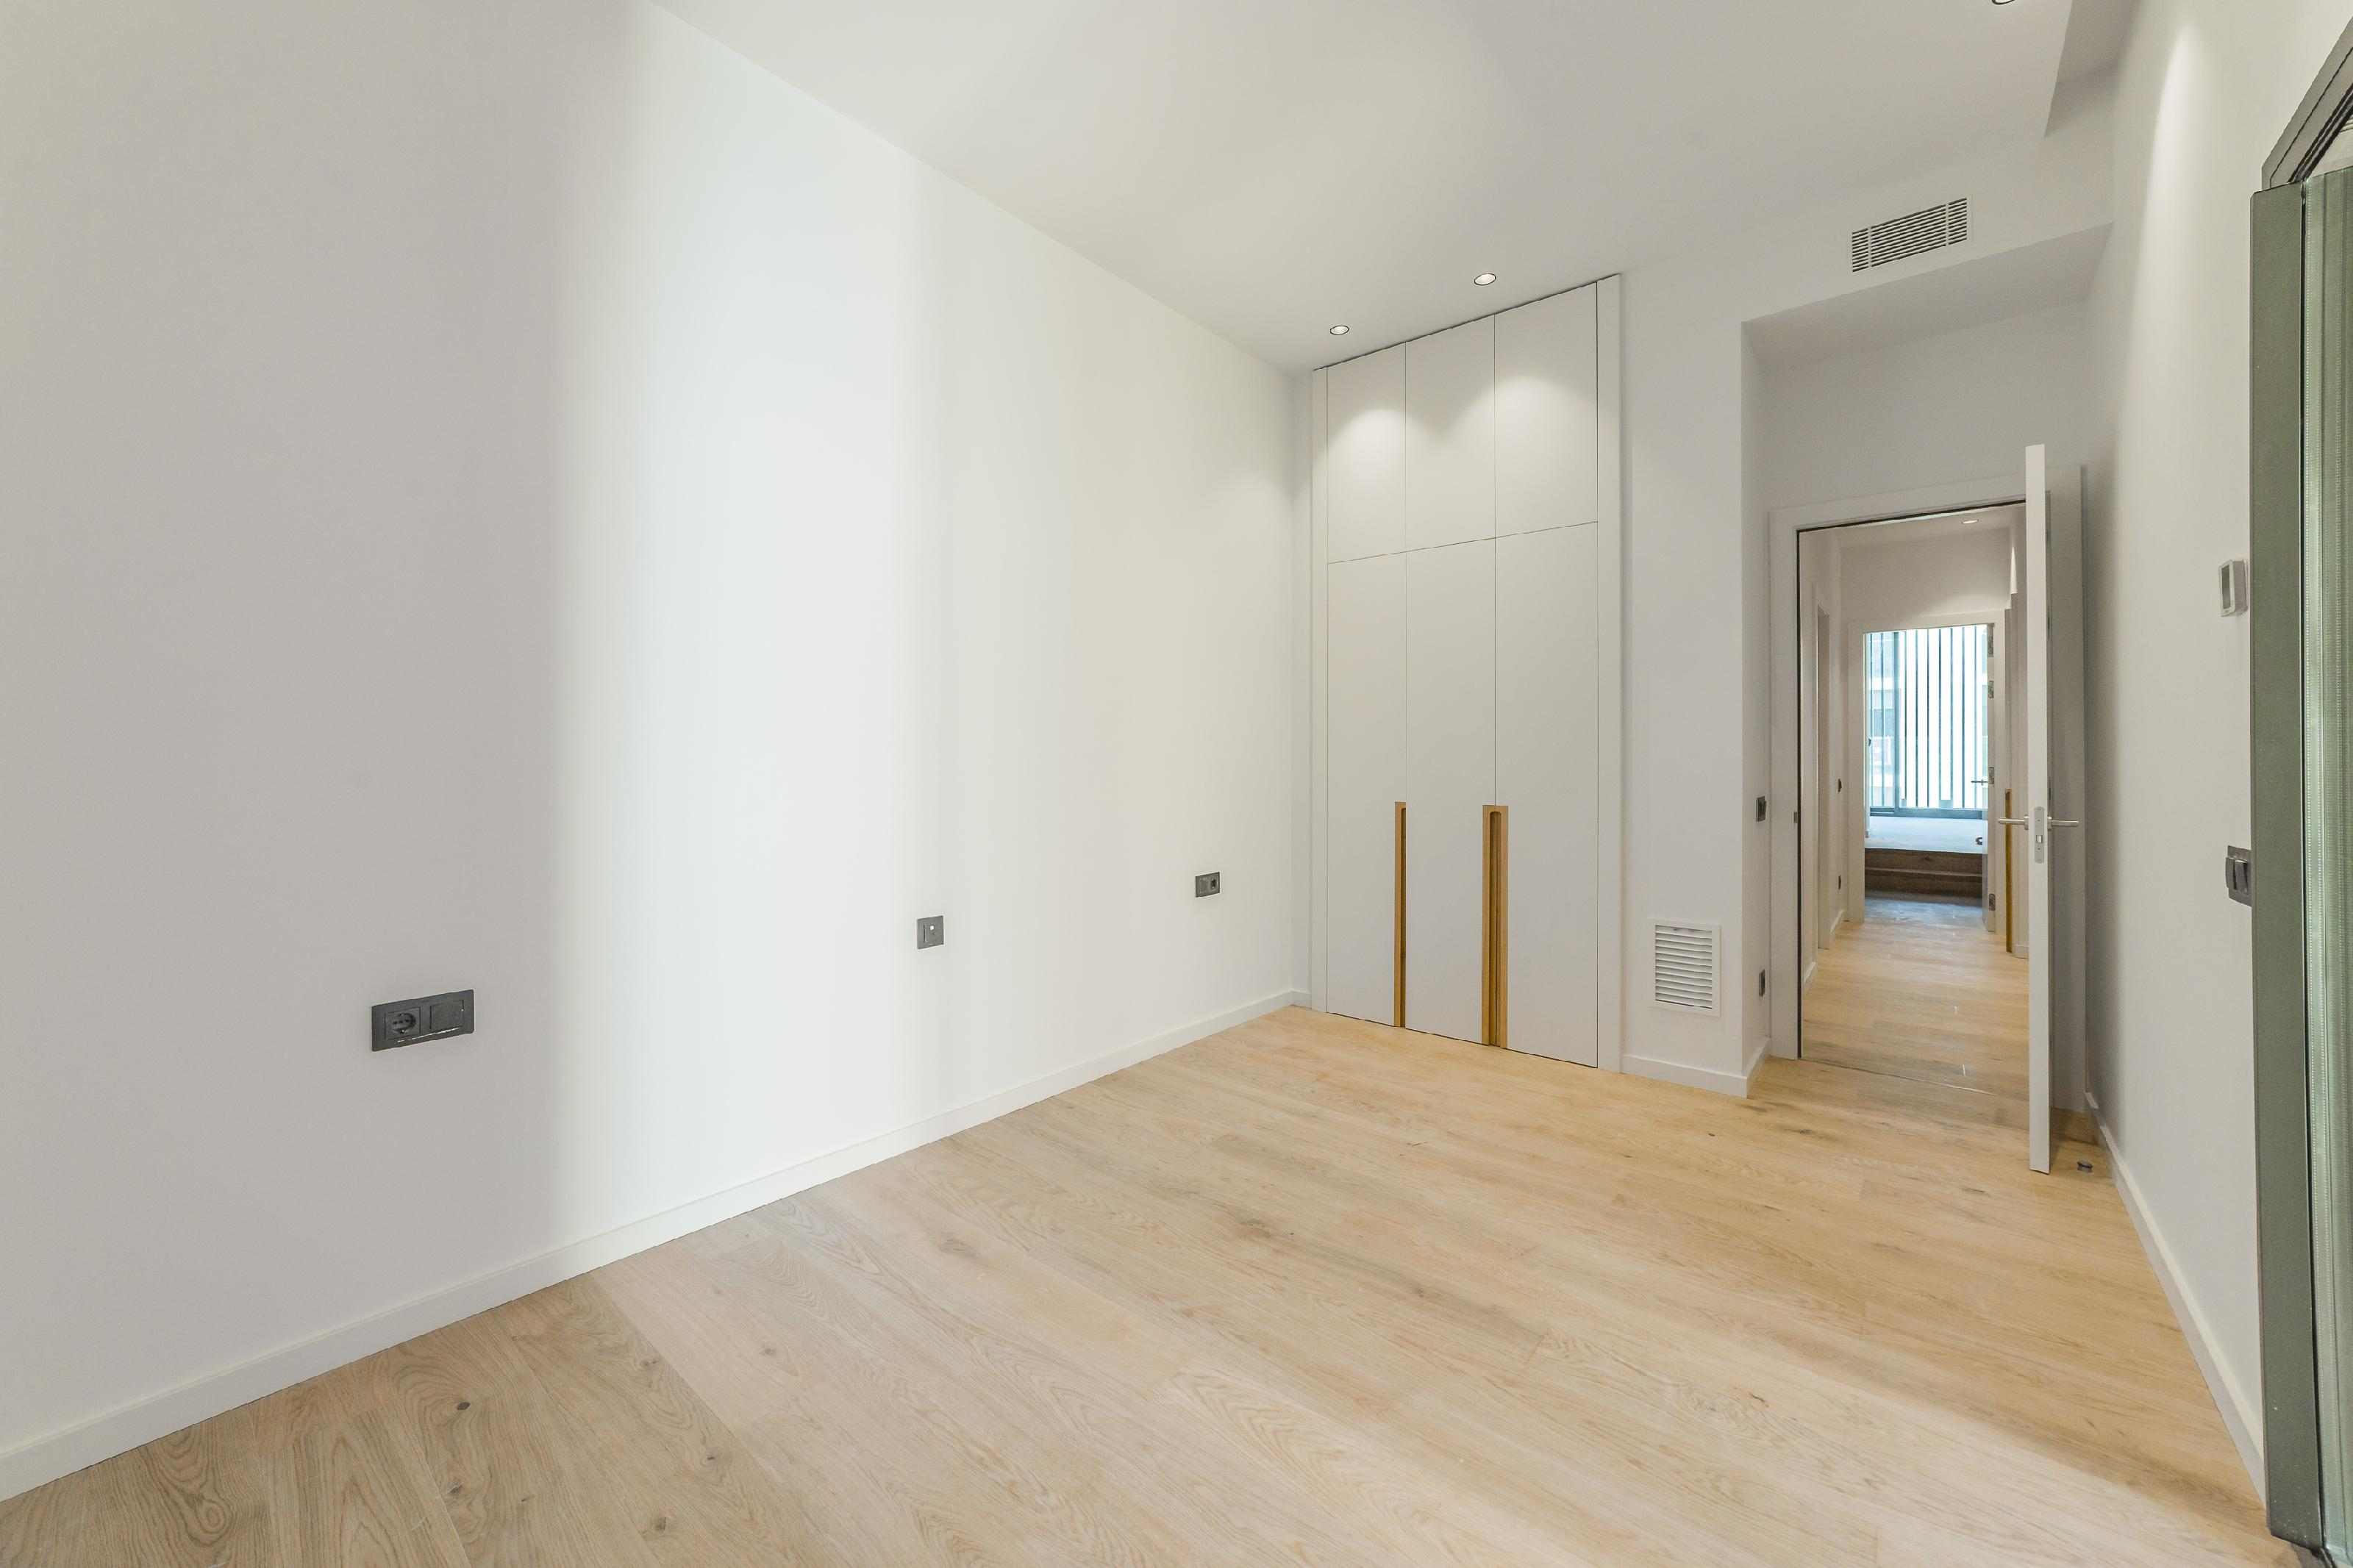 182474 Apartment for sale in Eixample, Old Left Eixample 27